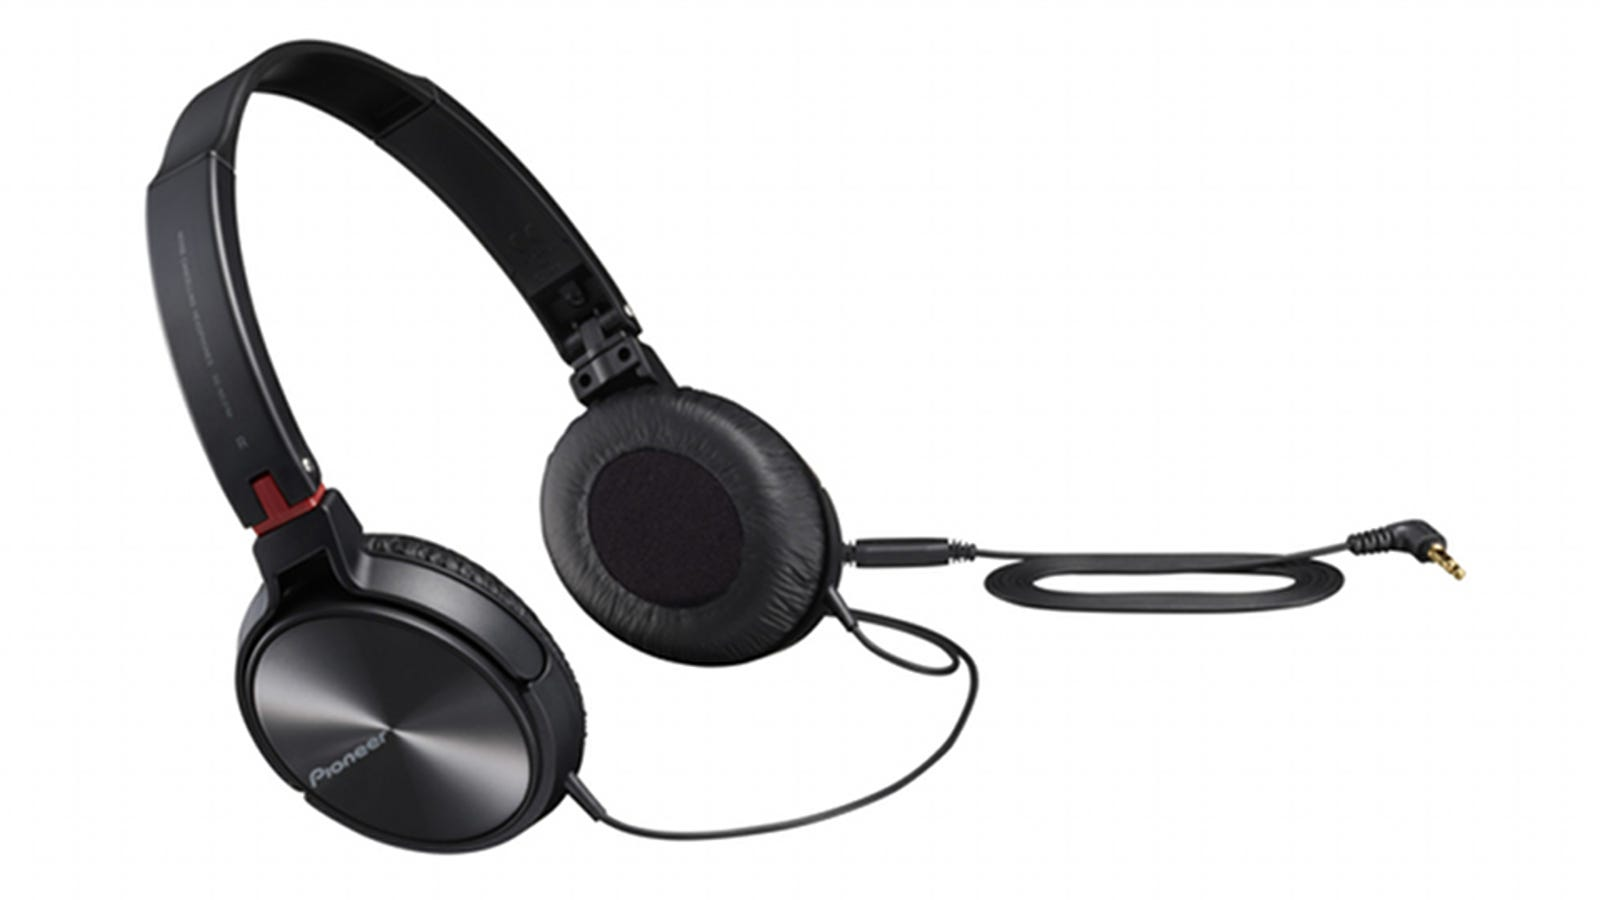 sennheiser earbuds ie800 - Pioneer's Gorgeous New Headphones Pack Up and Go With You Anywhere